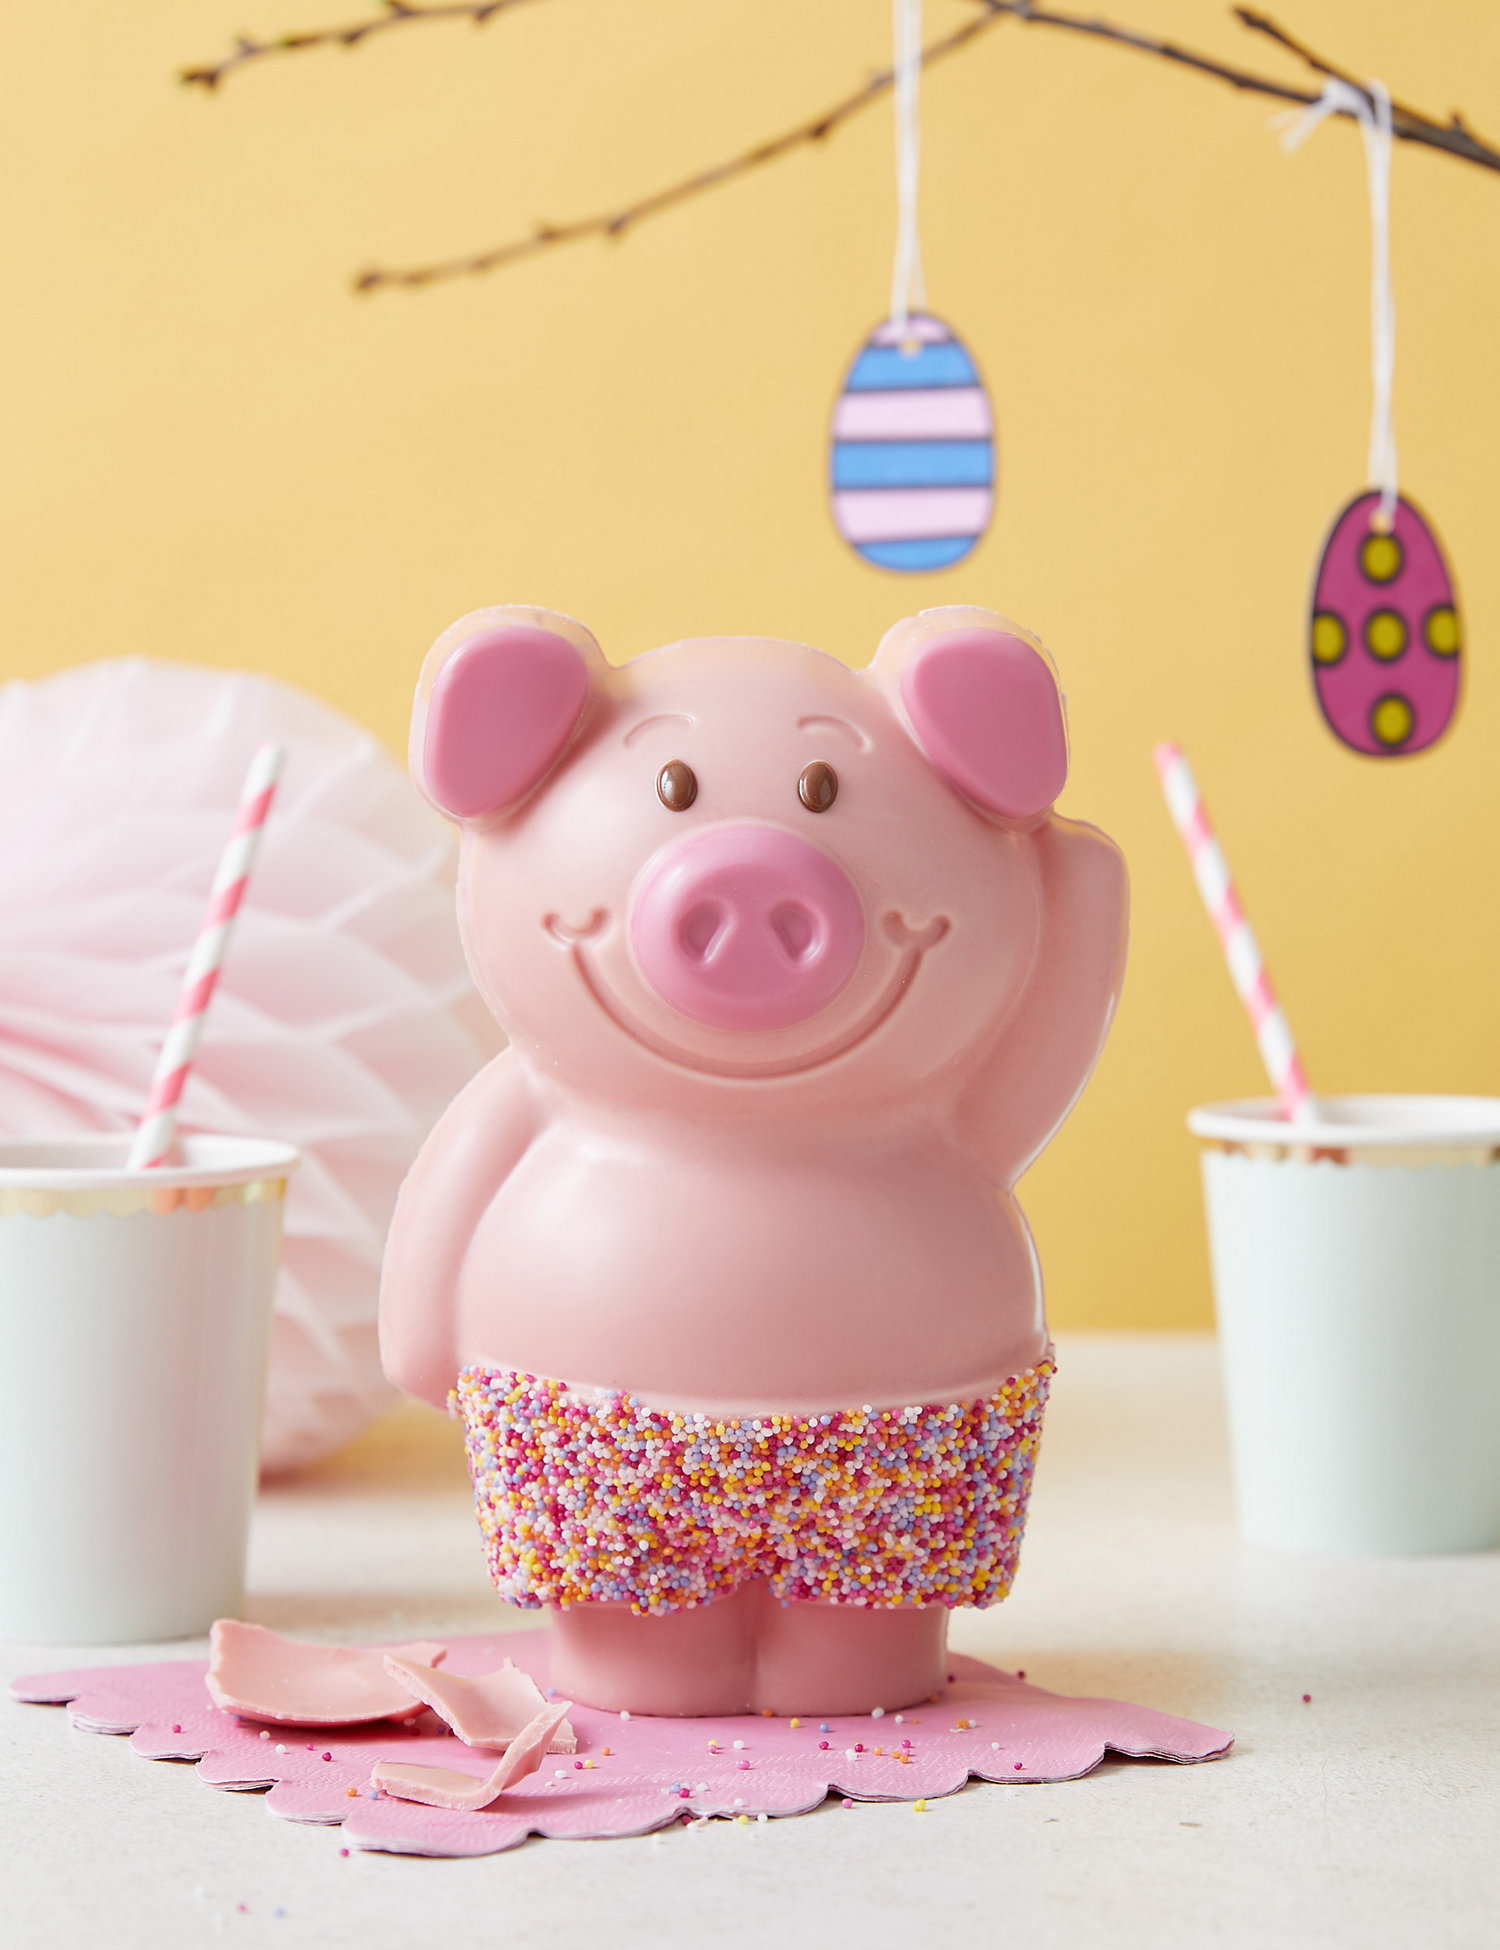 Giant White Chocolate Percy Pig™ with Jazzy Trousers. Image Credit: Marks & Spencer